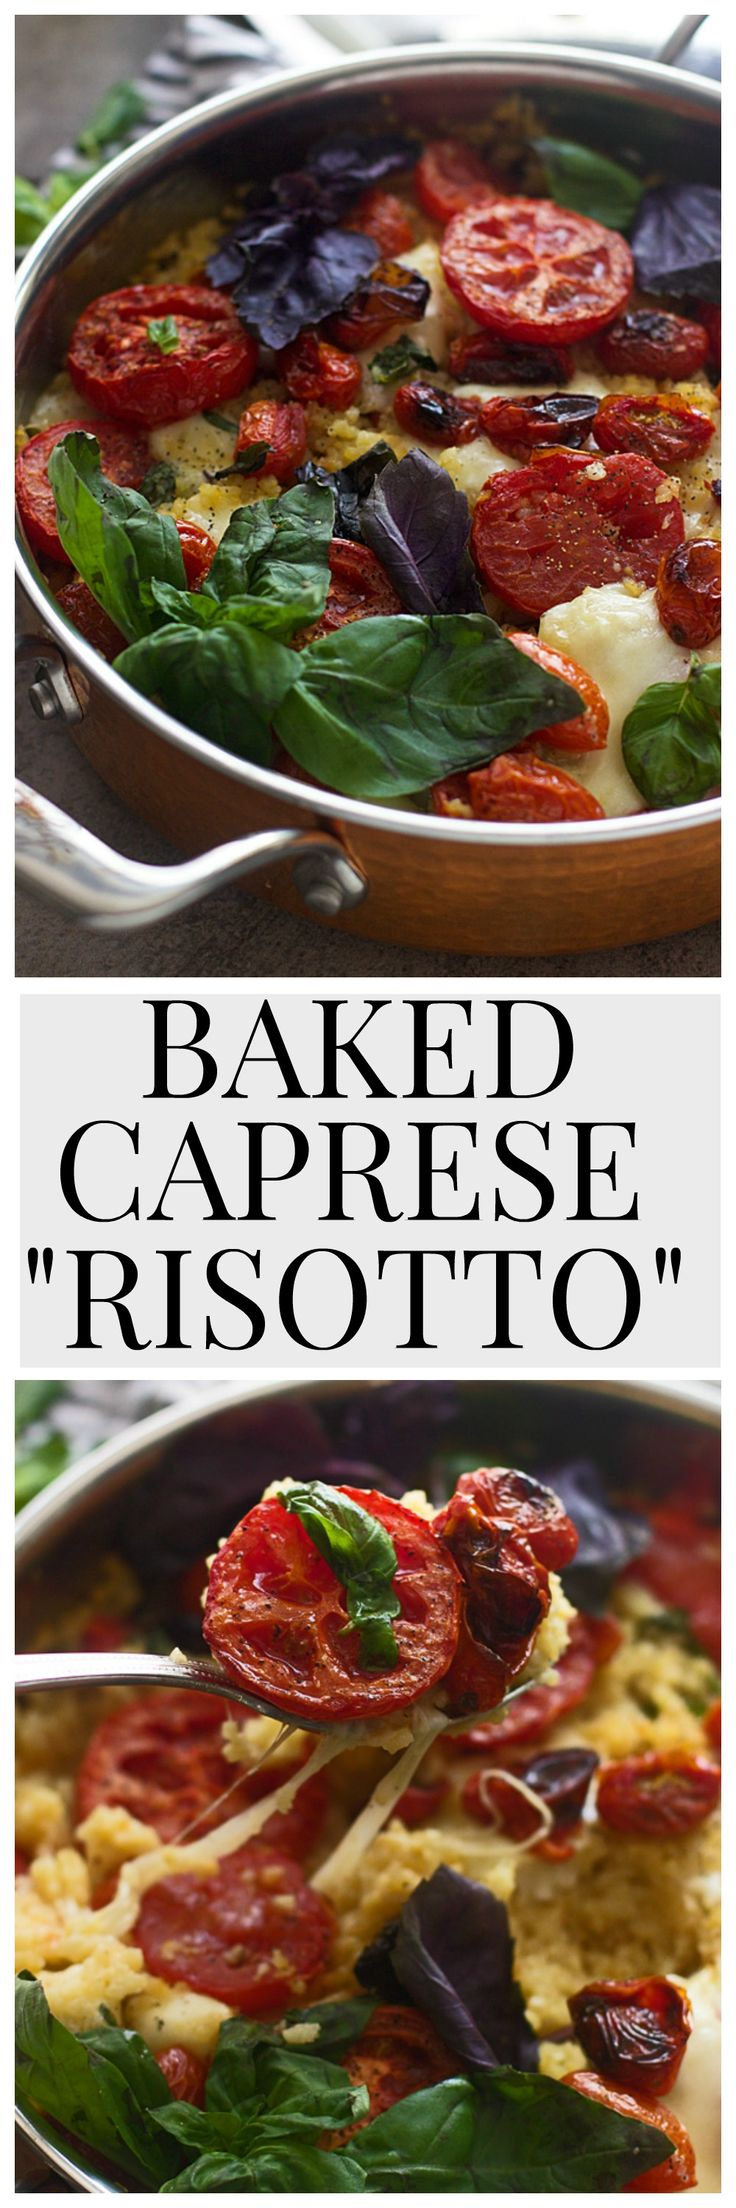 """BAKED CAPRESE """"RISOTTO"""" - A cheater risotto that takes virtually no effort whatsoever!"""